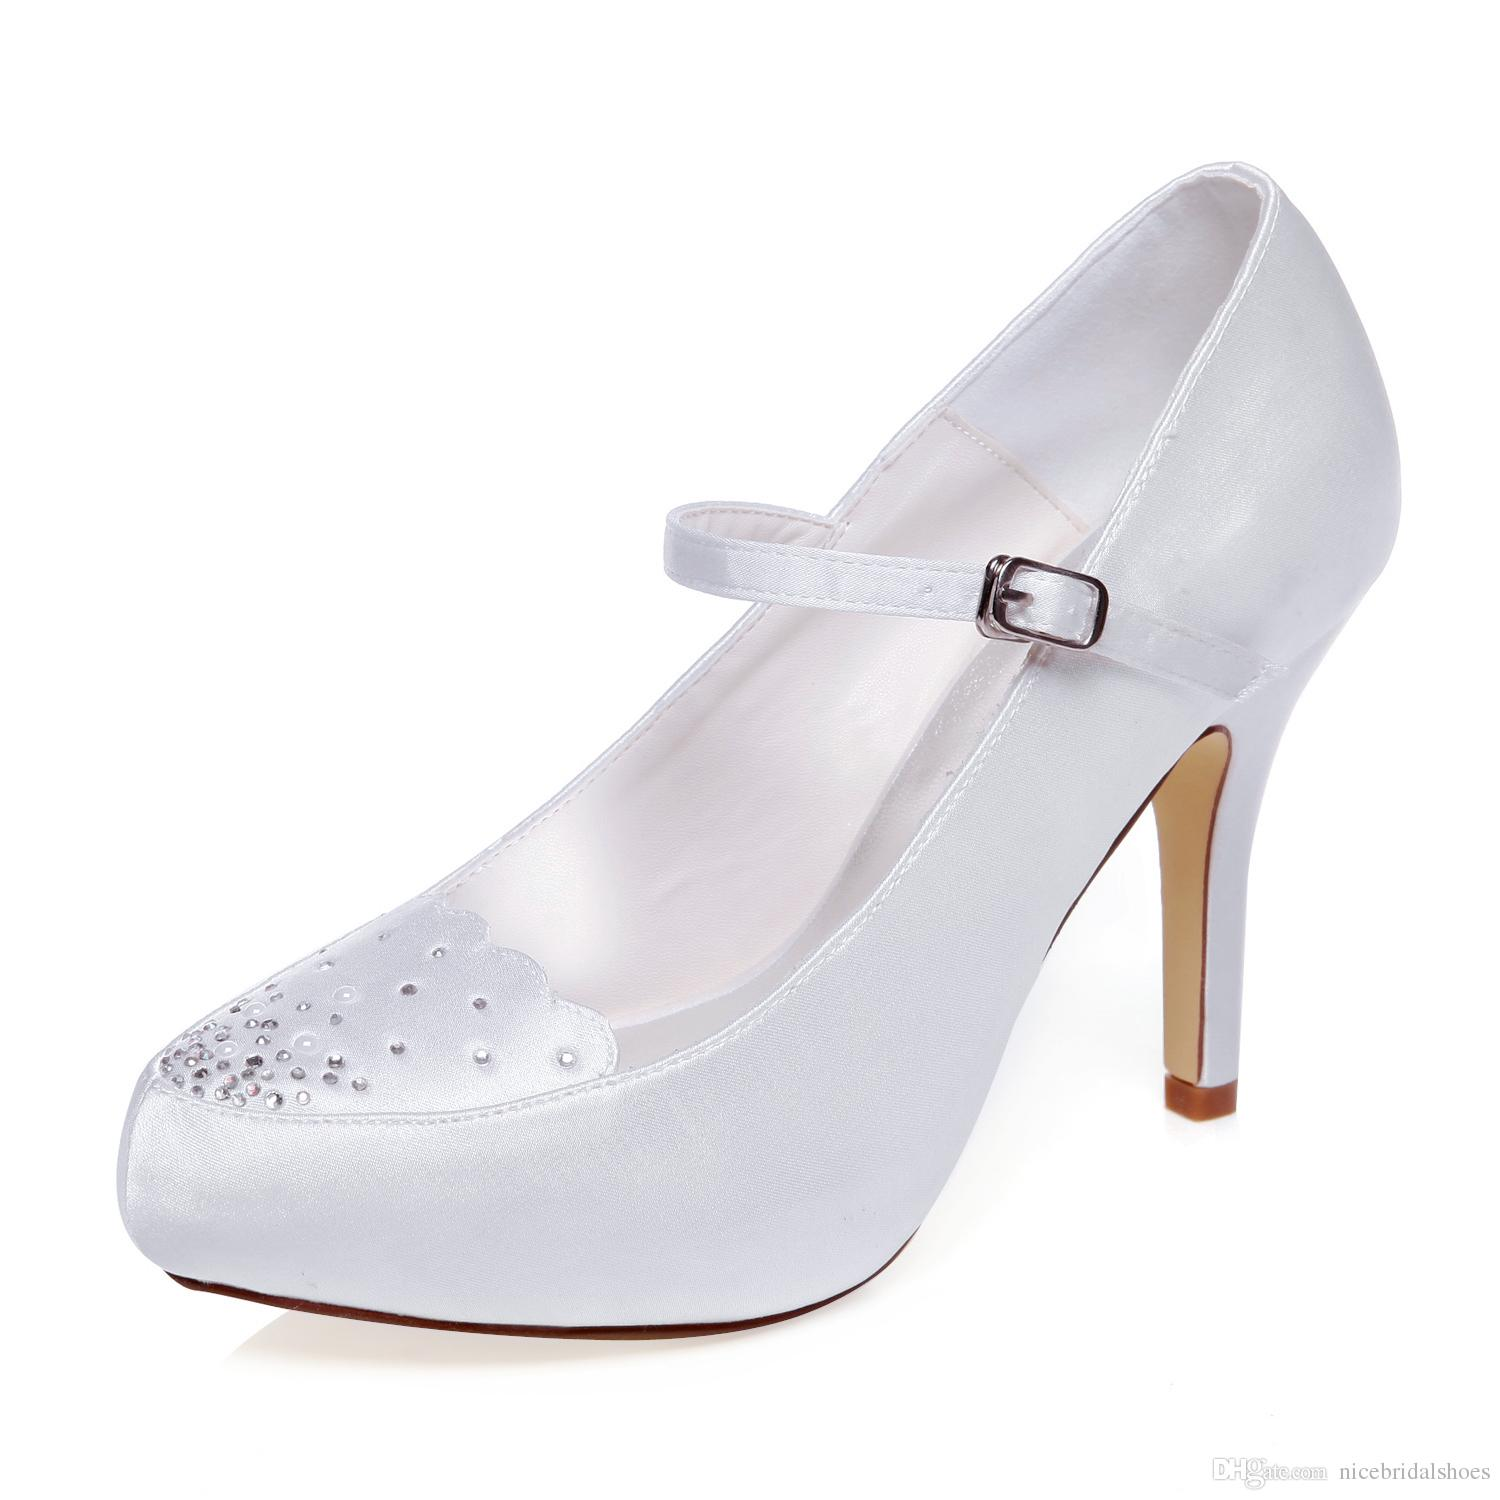 10cm Heel Ivory Color Platform Pump Style Mary Jane Bridal Shoes ...